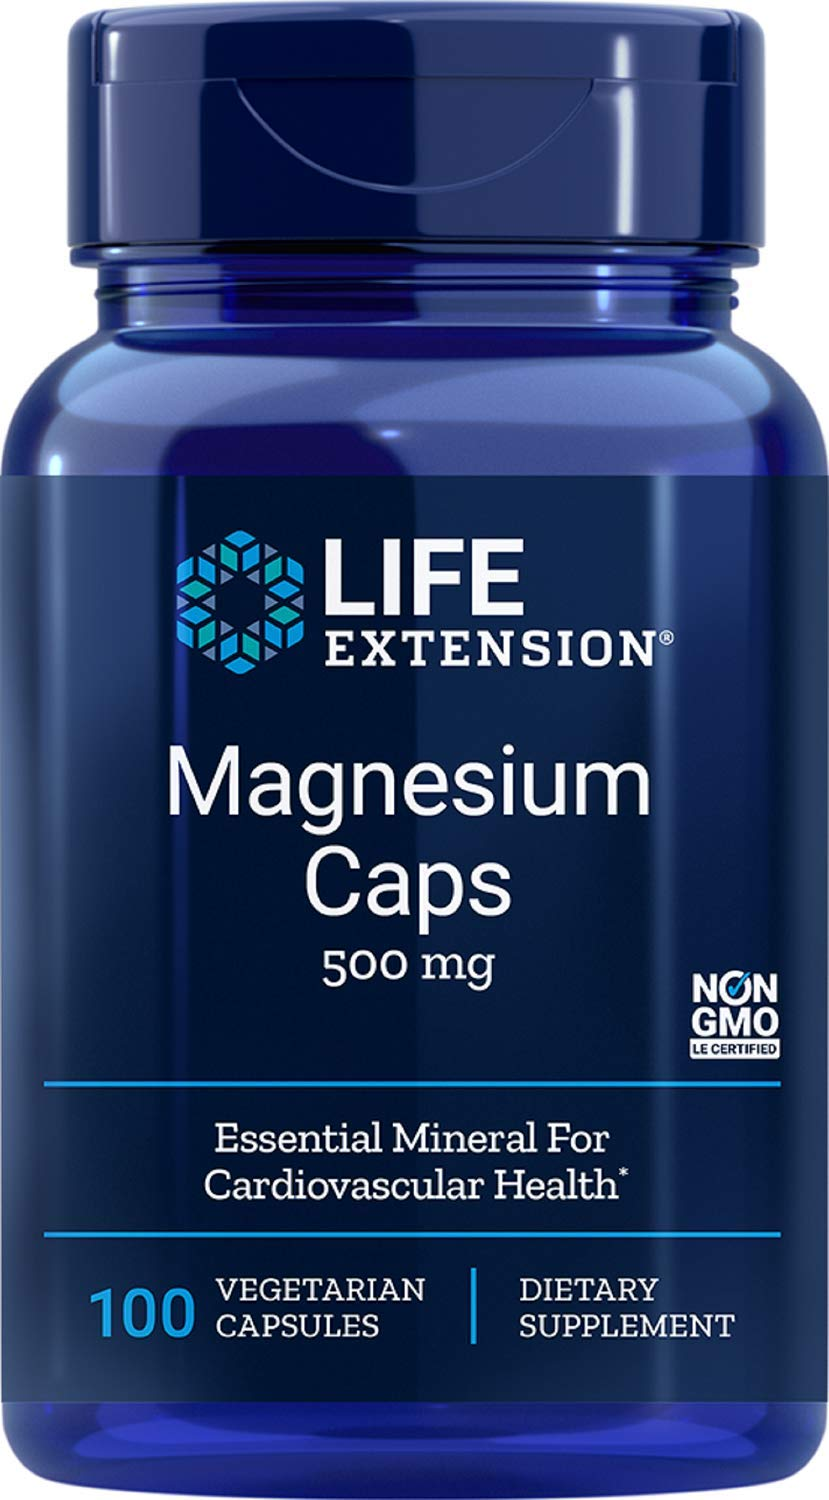 Life Extension Magnesium Caps (500mg, 100 Vegetarian Capsules), 1 Units